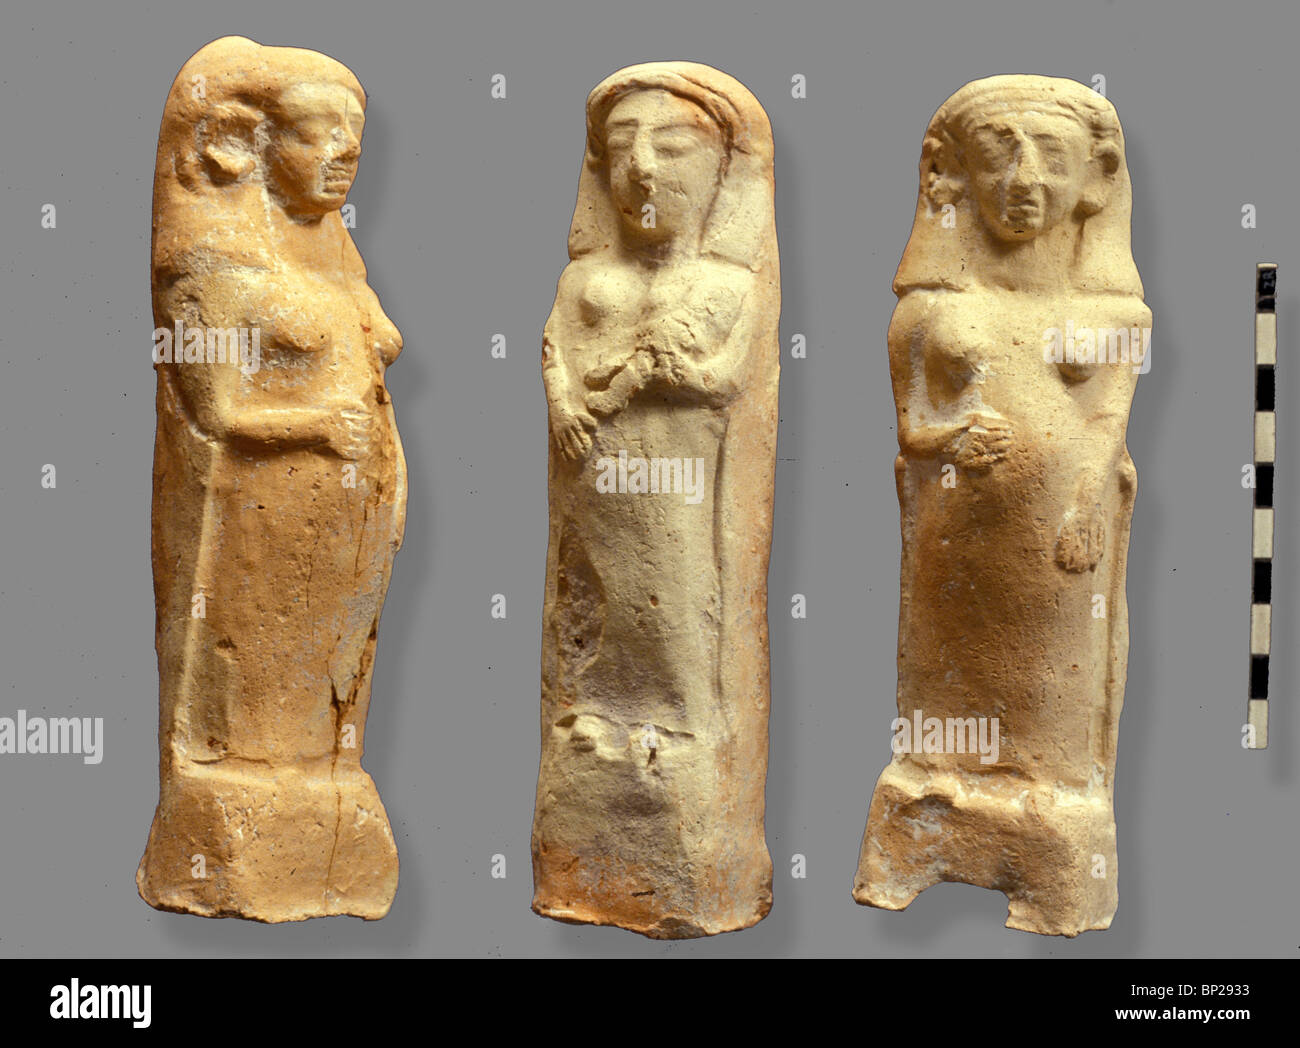 TERRACOTTA FIGURINES OF PREGNANT FEMALE FIGURES PROBABLY FERTILITY GODDESSES USED TO PROTECT THE PREGNANT WOMAN - Stock Image